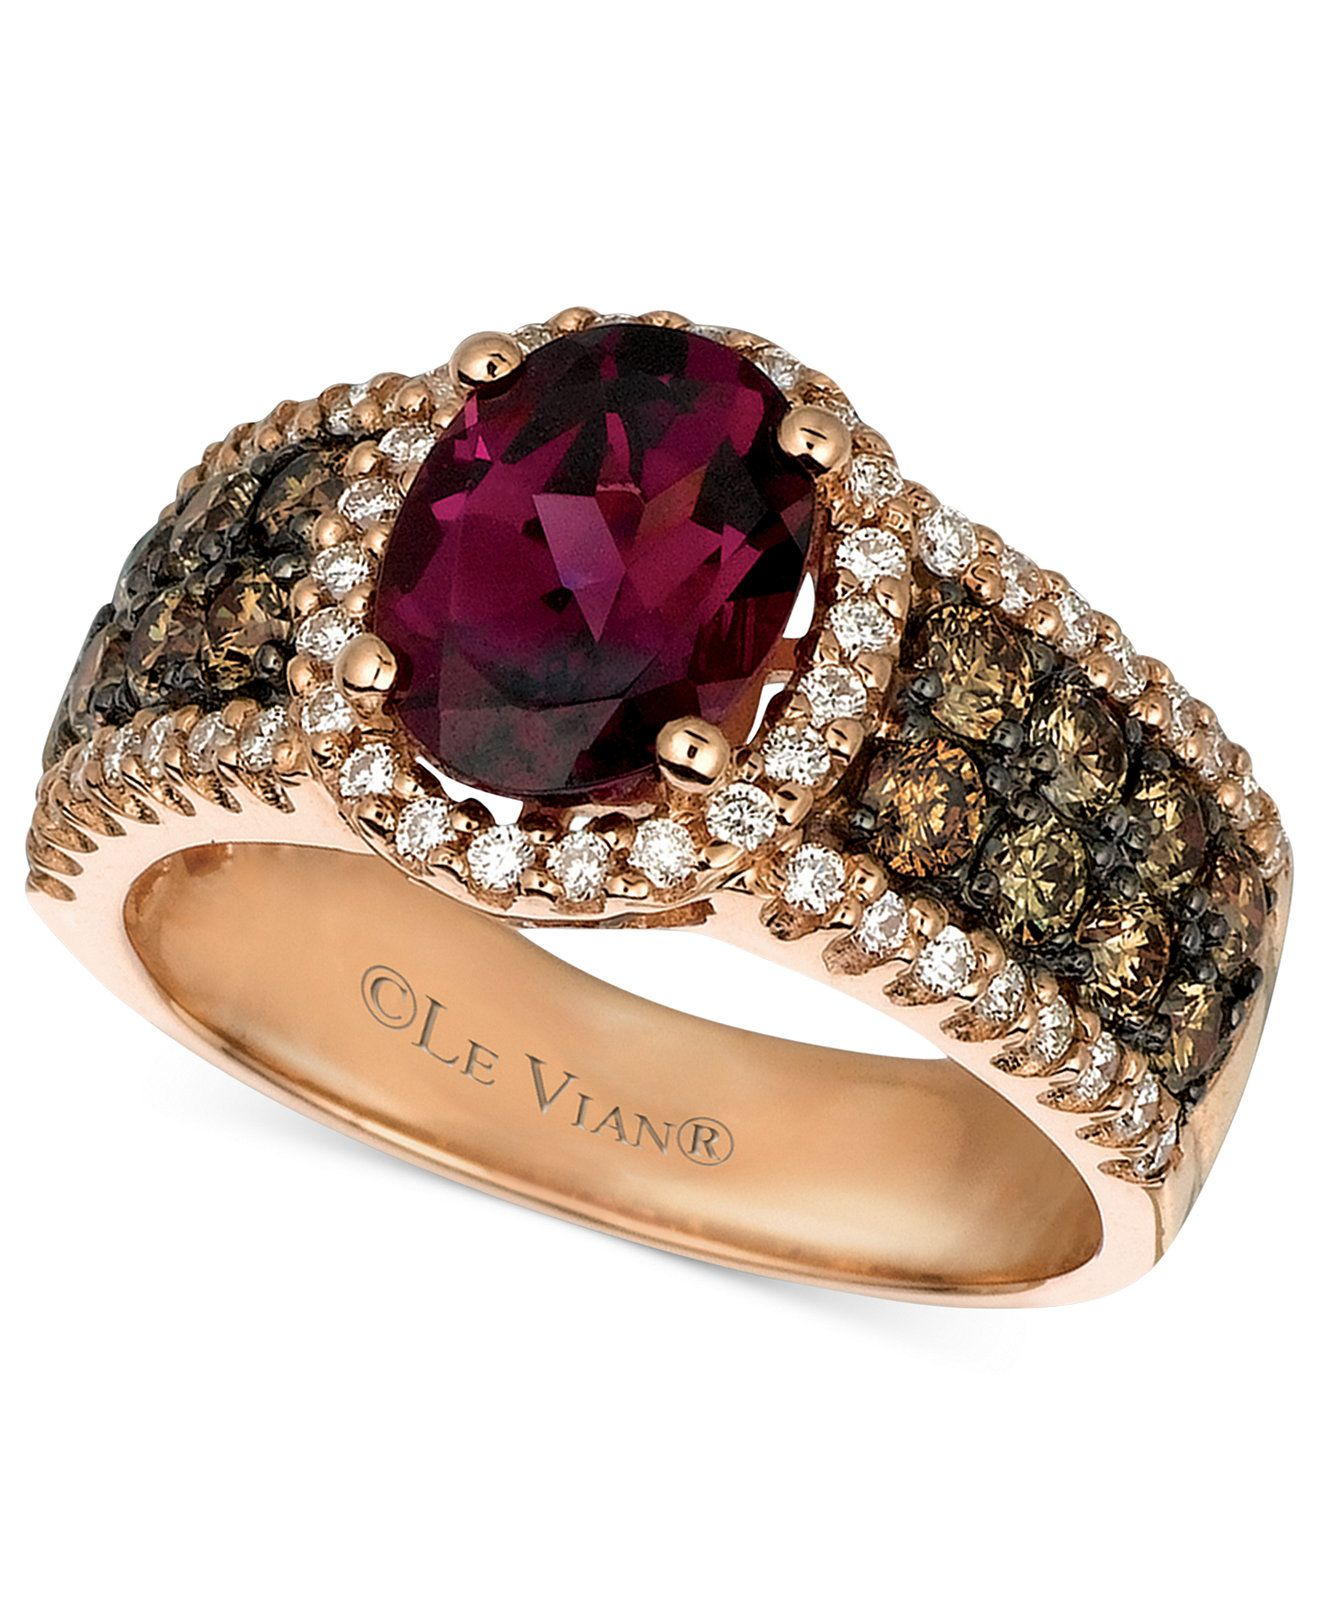 full diamond green cut size large jewelry fullxfull antique accents rings proposal ring gallery solitaire expensive of brands verragio rose garnet custom tag princess pear a ideas gold rhodolite radiant engagement tags photo choosing sapphire colored with